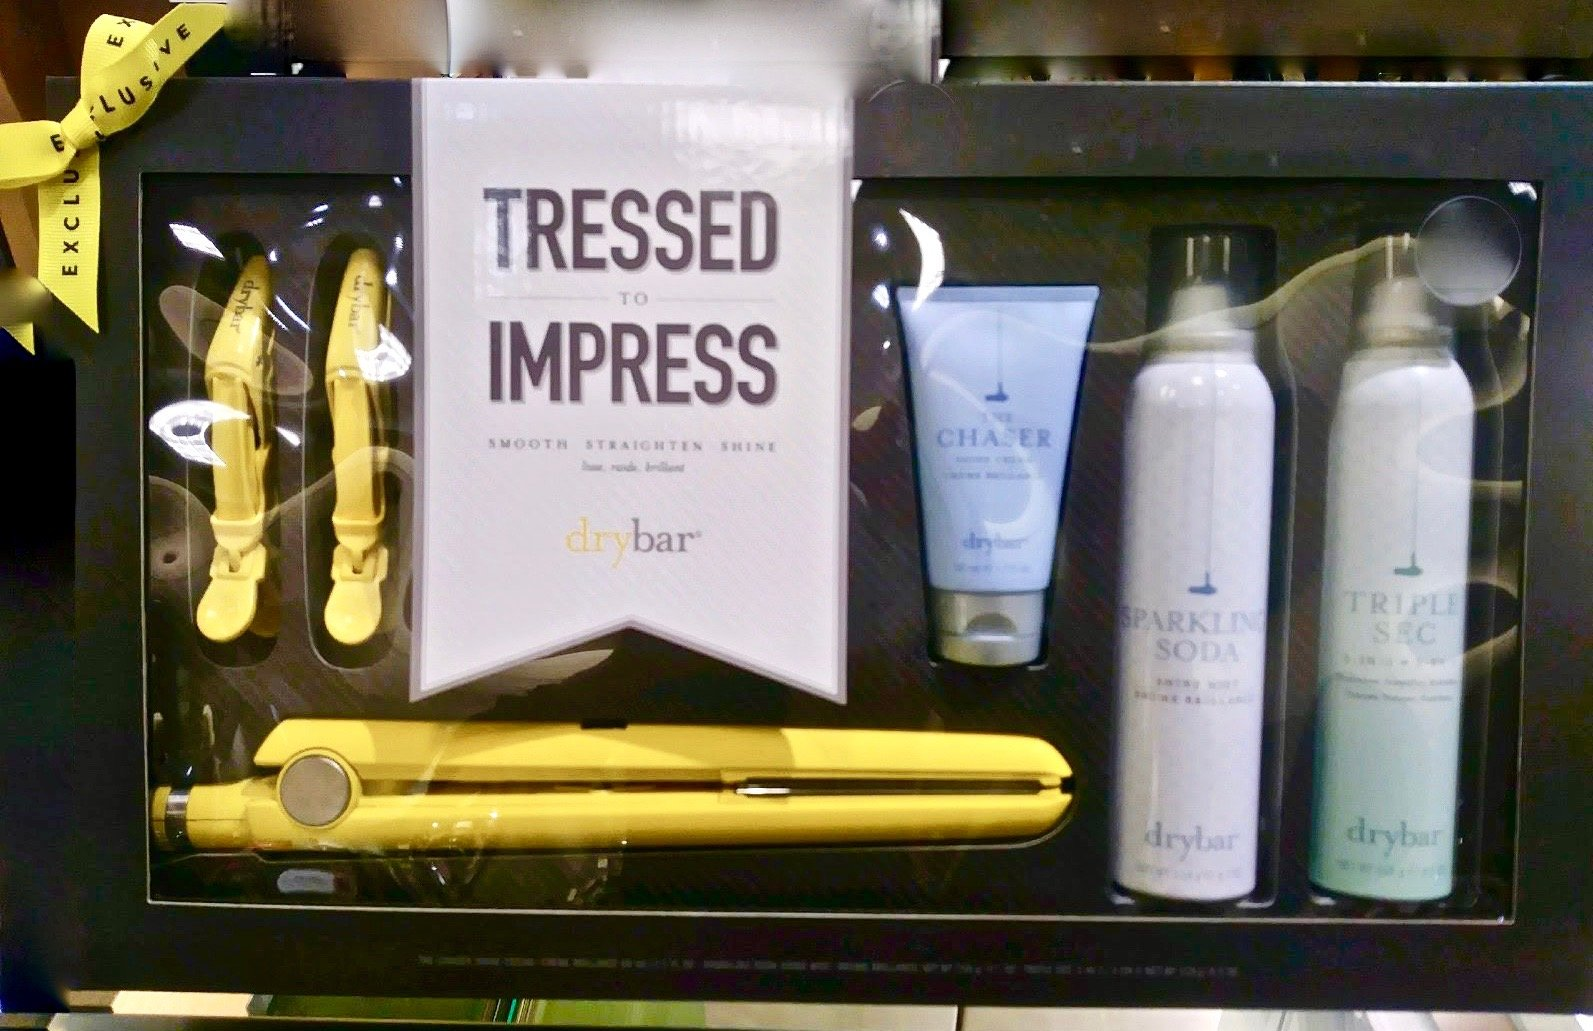 Drybar Tressed To Impress Hair Styling Set - Tress Press, Sparkling Soda, Triple Sec, Hold Me Clips and Chaser